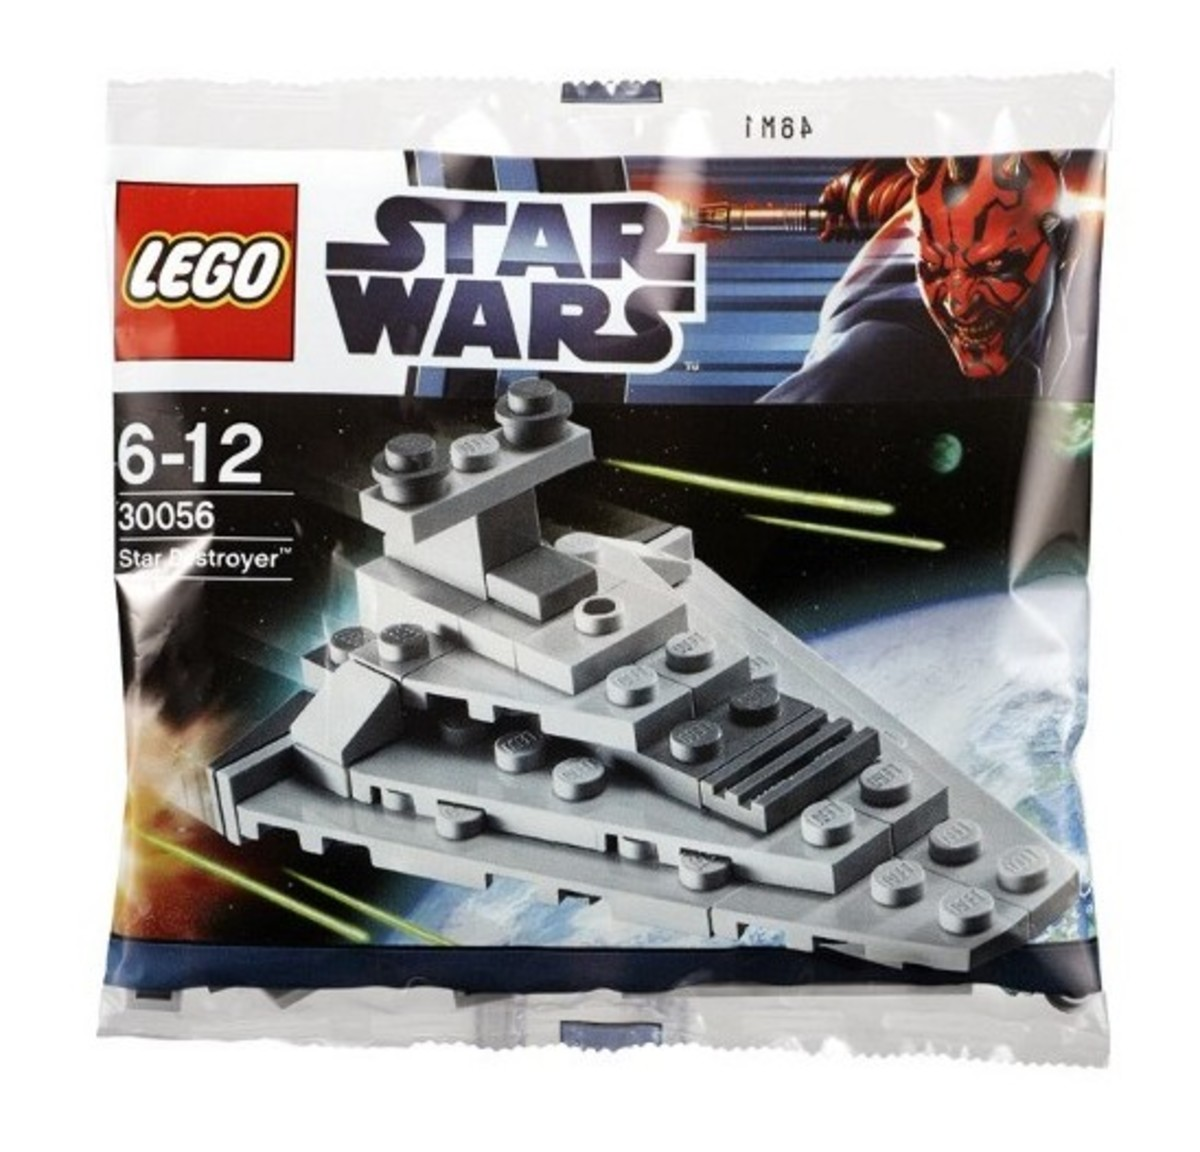 LEGO Star Wars Star Destroyer 30056 Bag